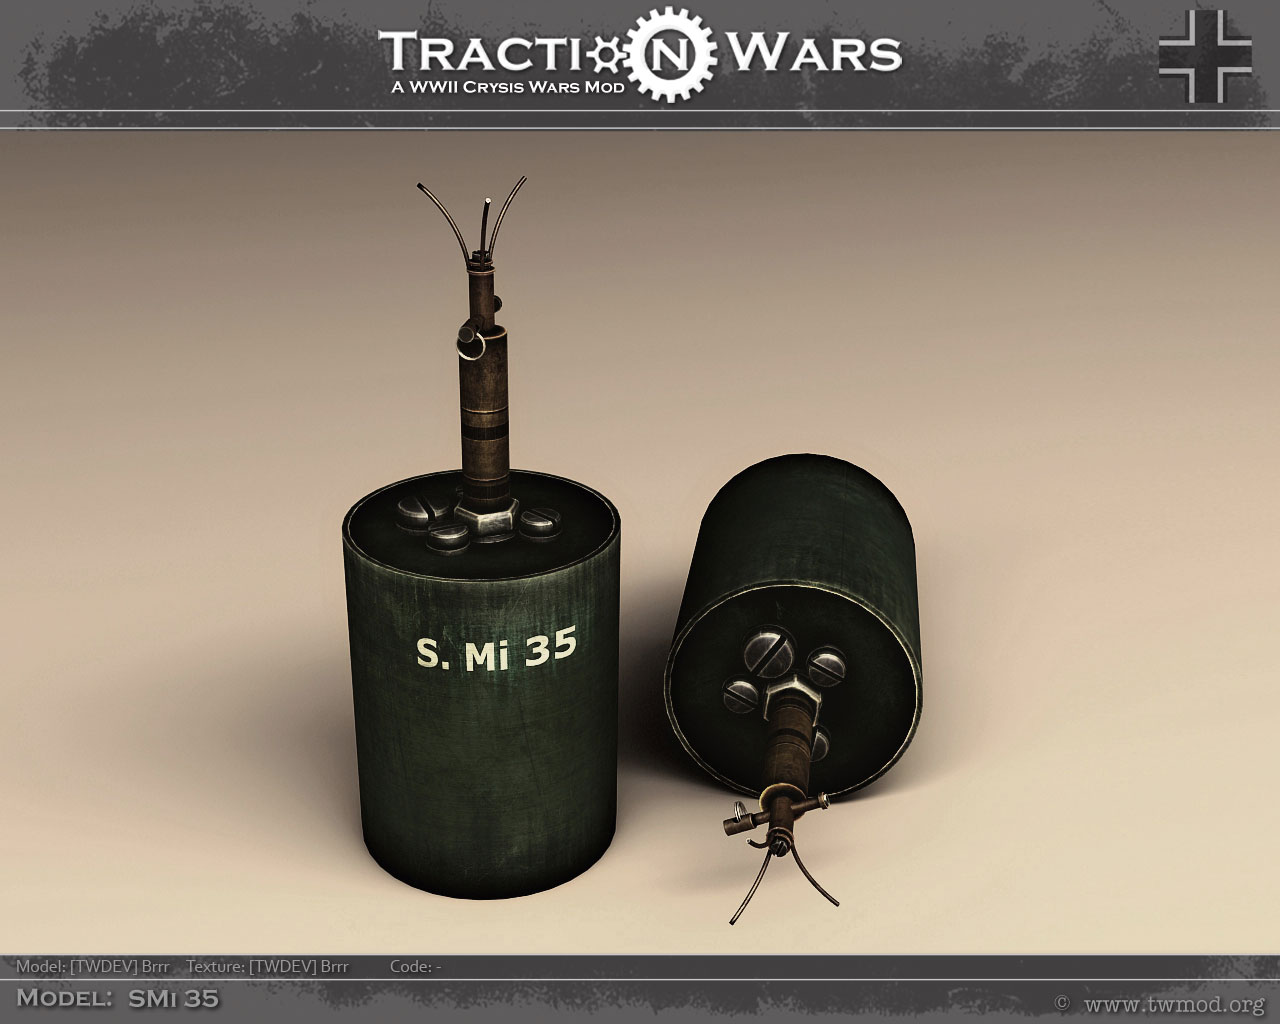 Traction wars wwii realism game update 11 bouncing betty